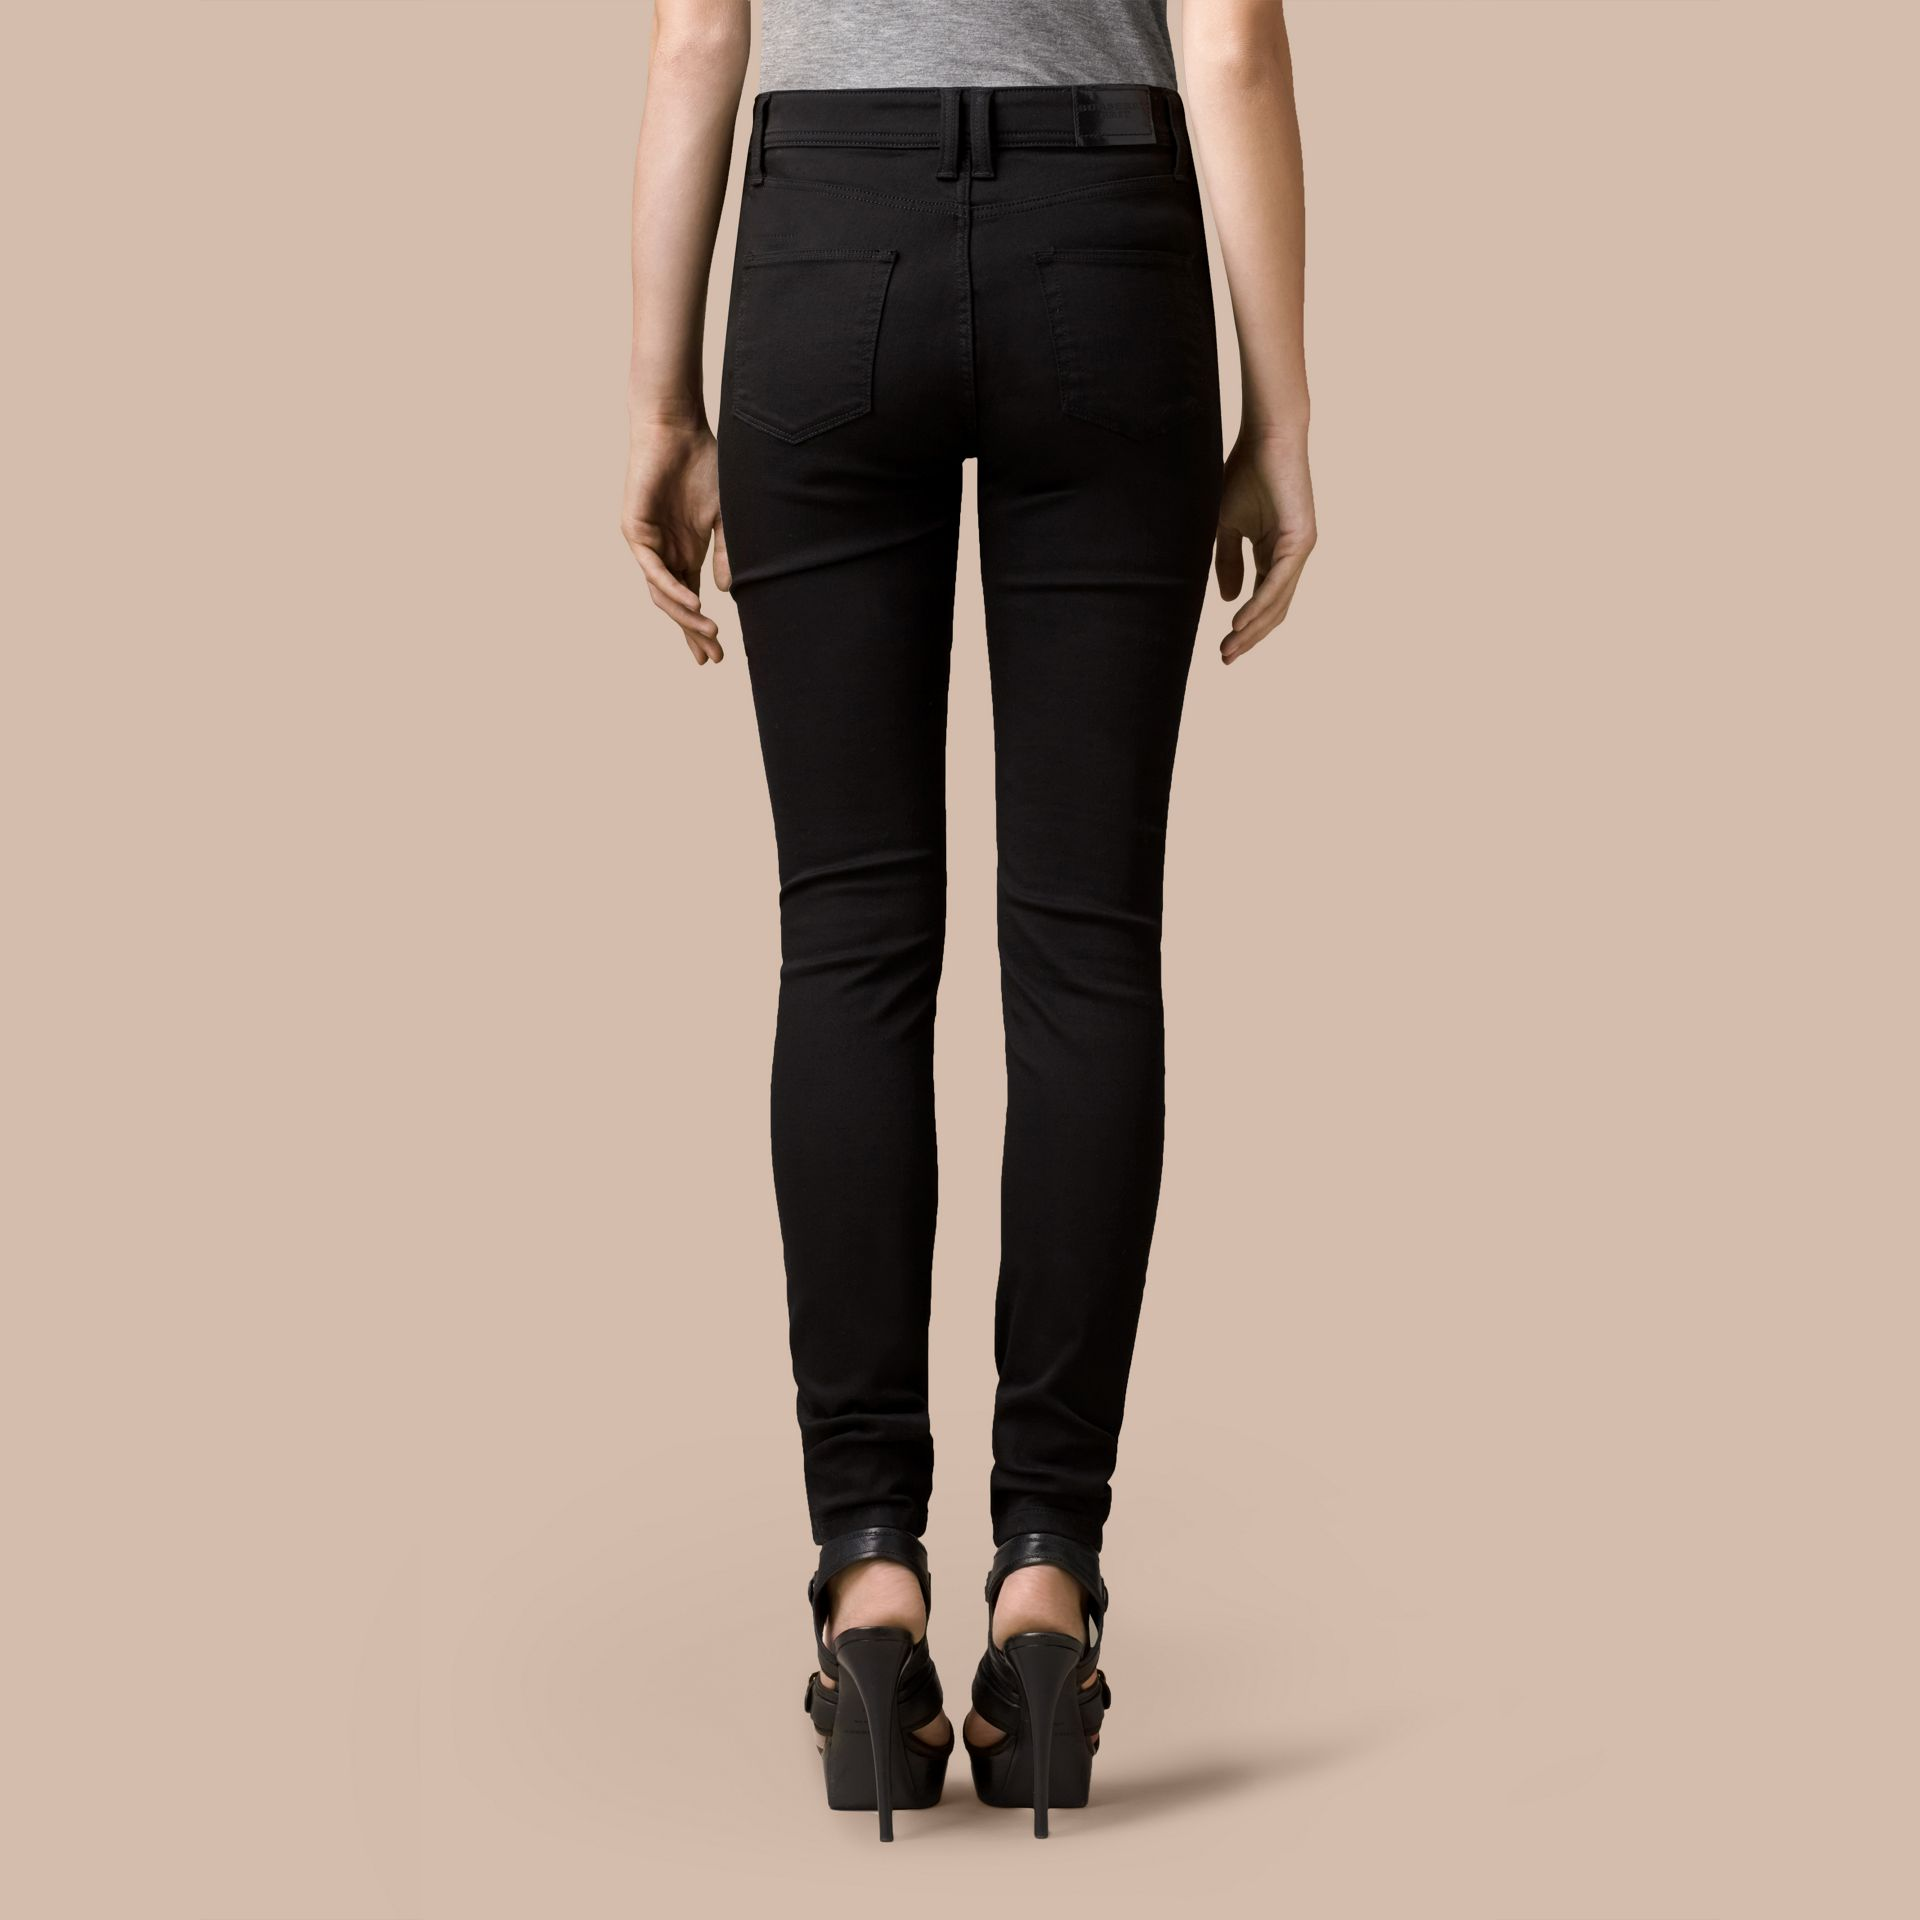 Black Skinny Fit High-Rise Deep Black Jeans - gallery image 3